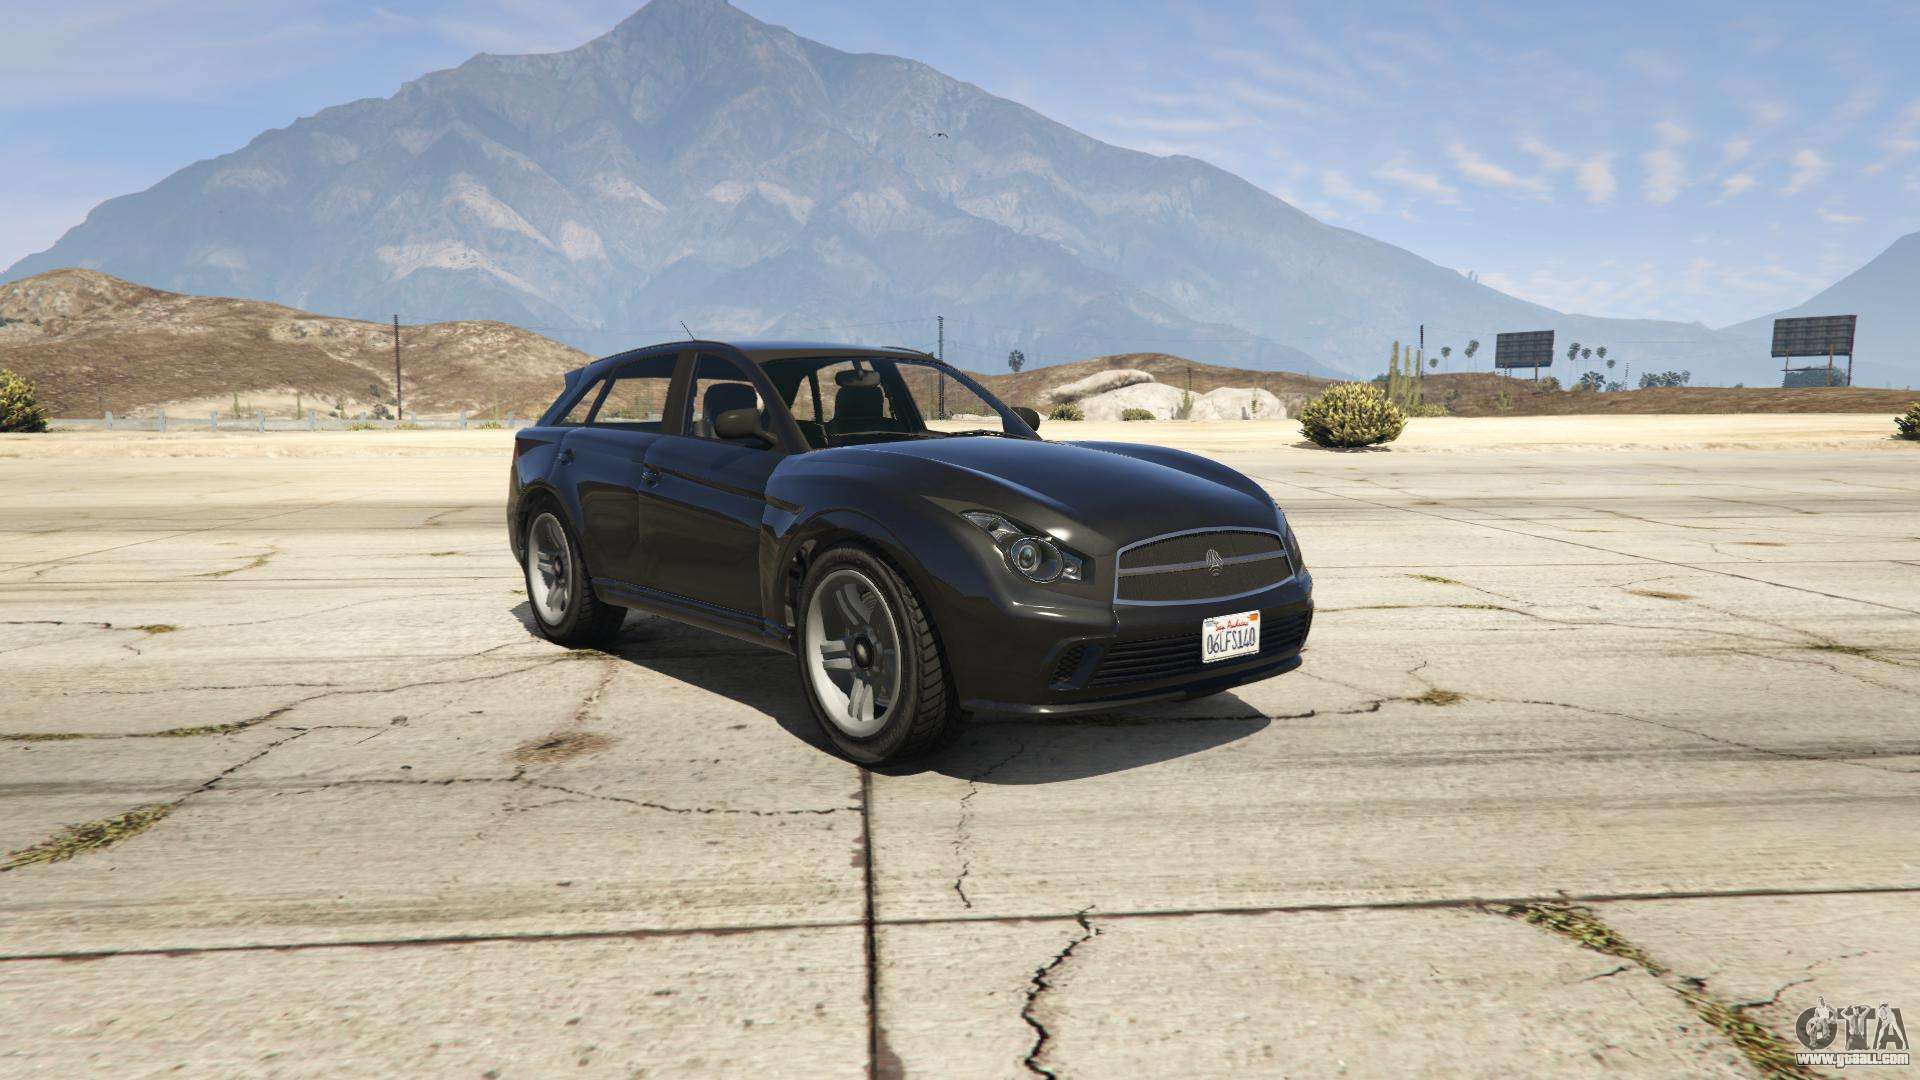 Fathom FQ 2 of GTA 5 - front view